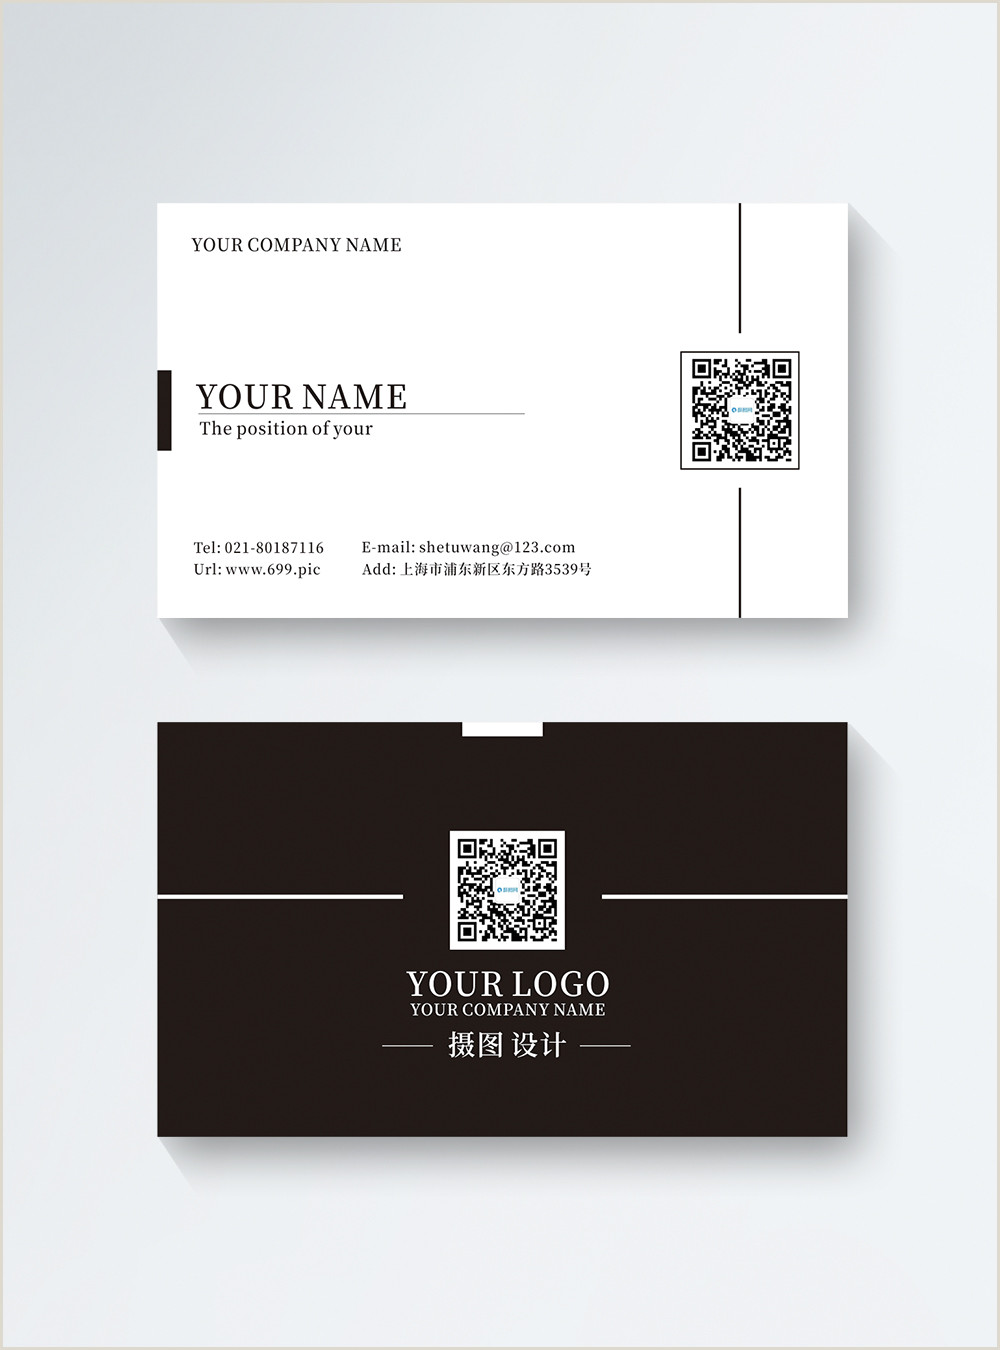 Black And White Business Cards Templates Free Simple Black And White Business Card Template Image Picture